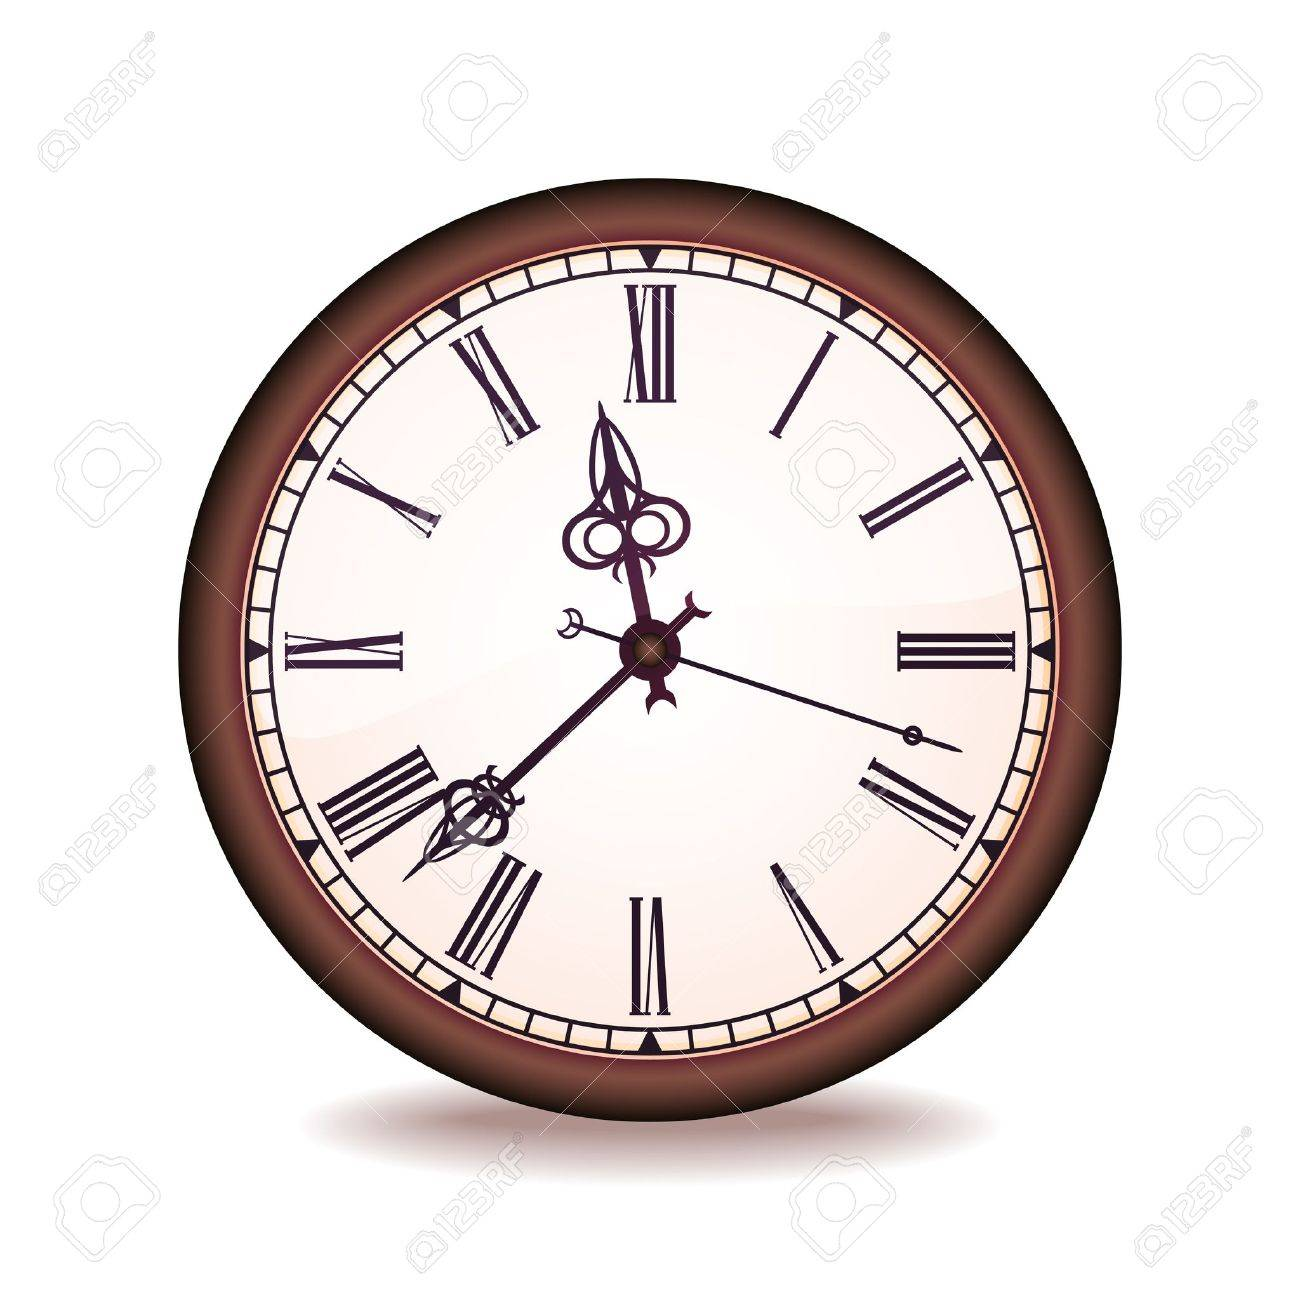 Vintage wall clock with the Roman figures Stock Vector - 13876037